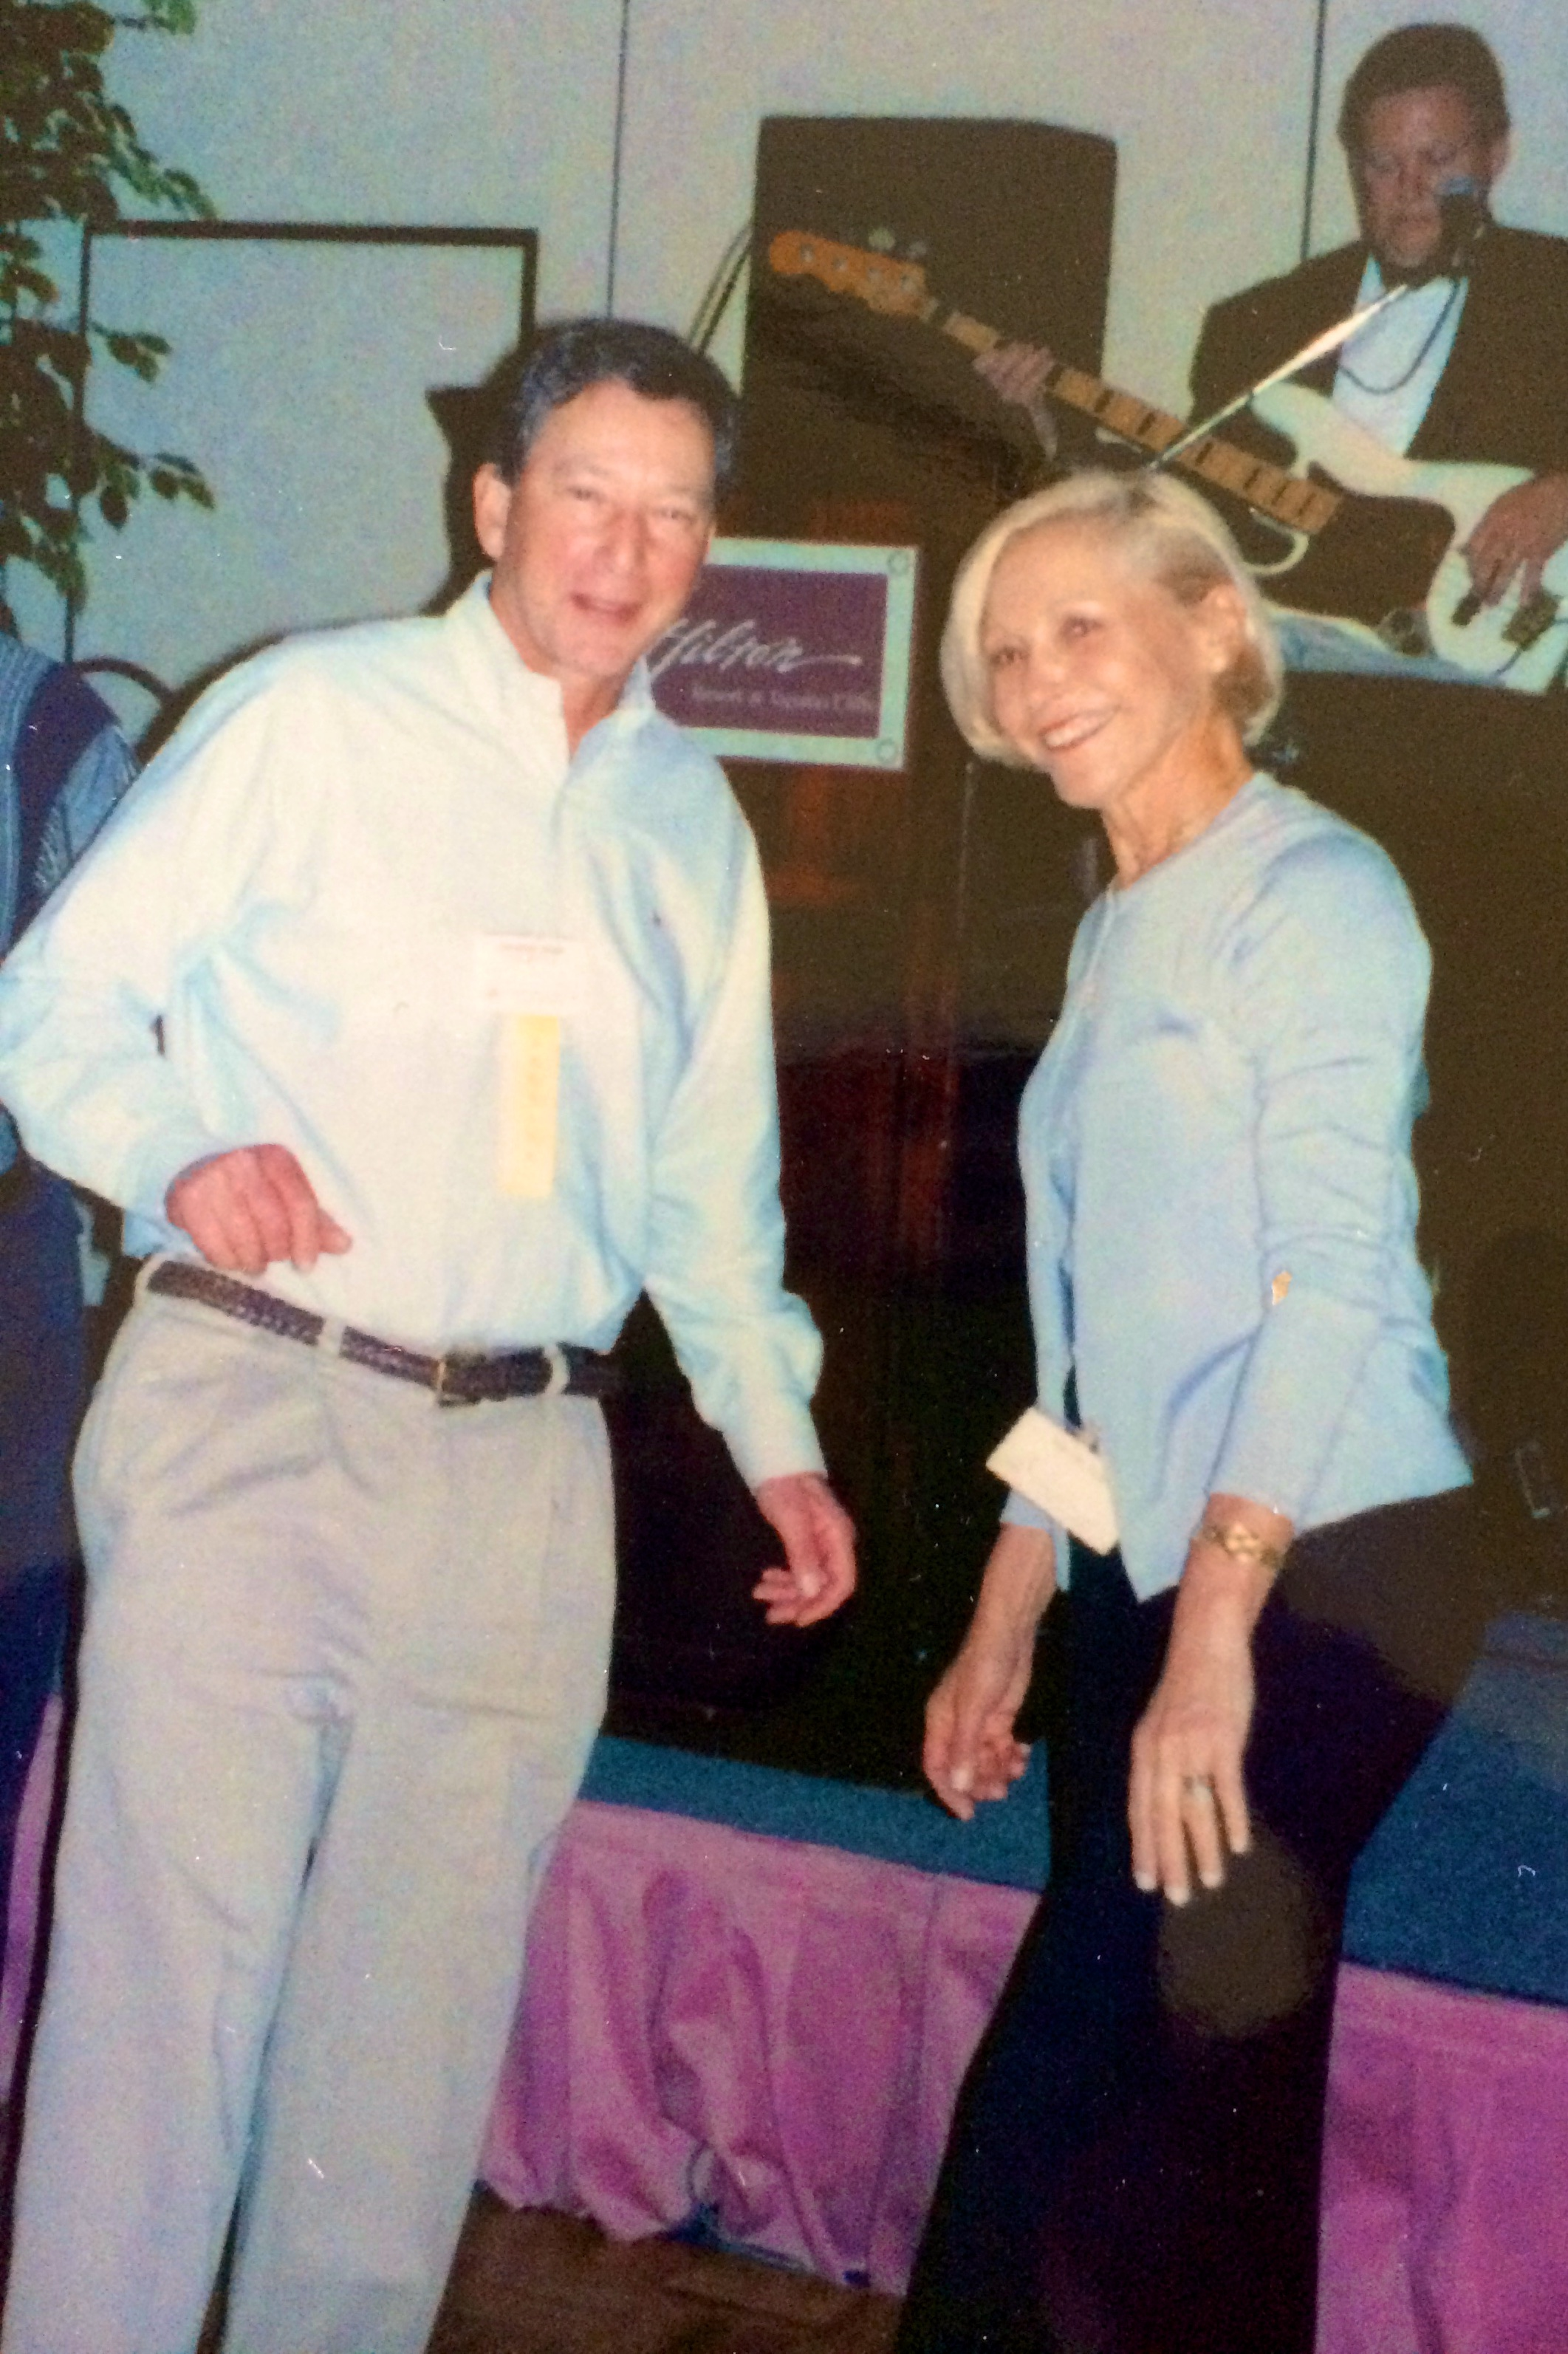 Jerry & Harriet Dancing at a Convention